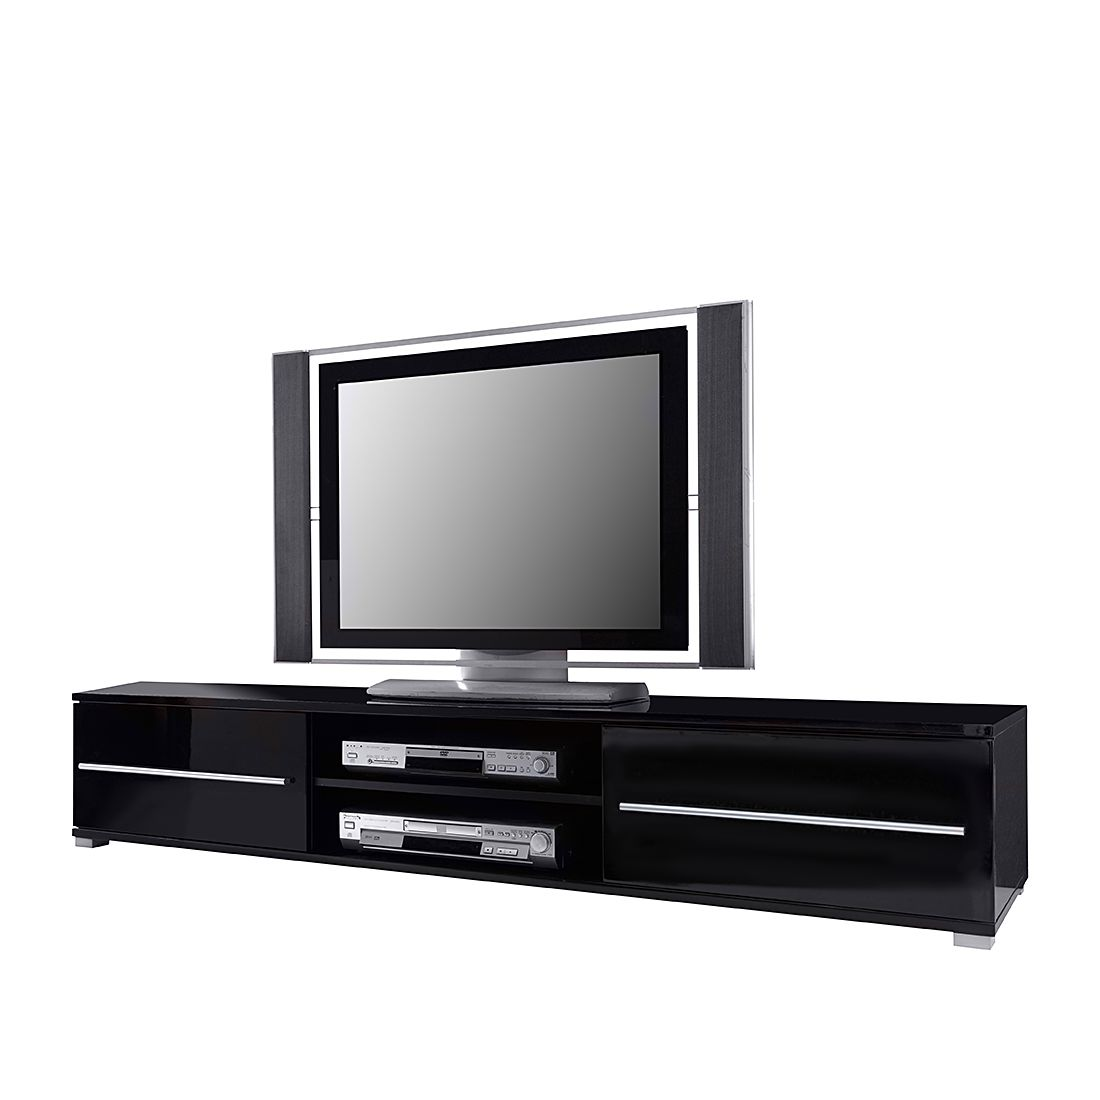 tv lowboard schwarz hochglanz sonstige preisvergleiche erfahrungsberichte und kauf bei nextag. Black Bedroom Furniture Sets. Home Design Ideas